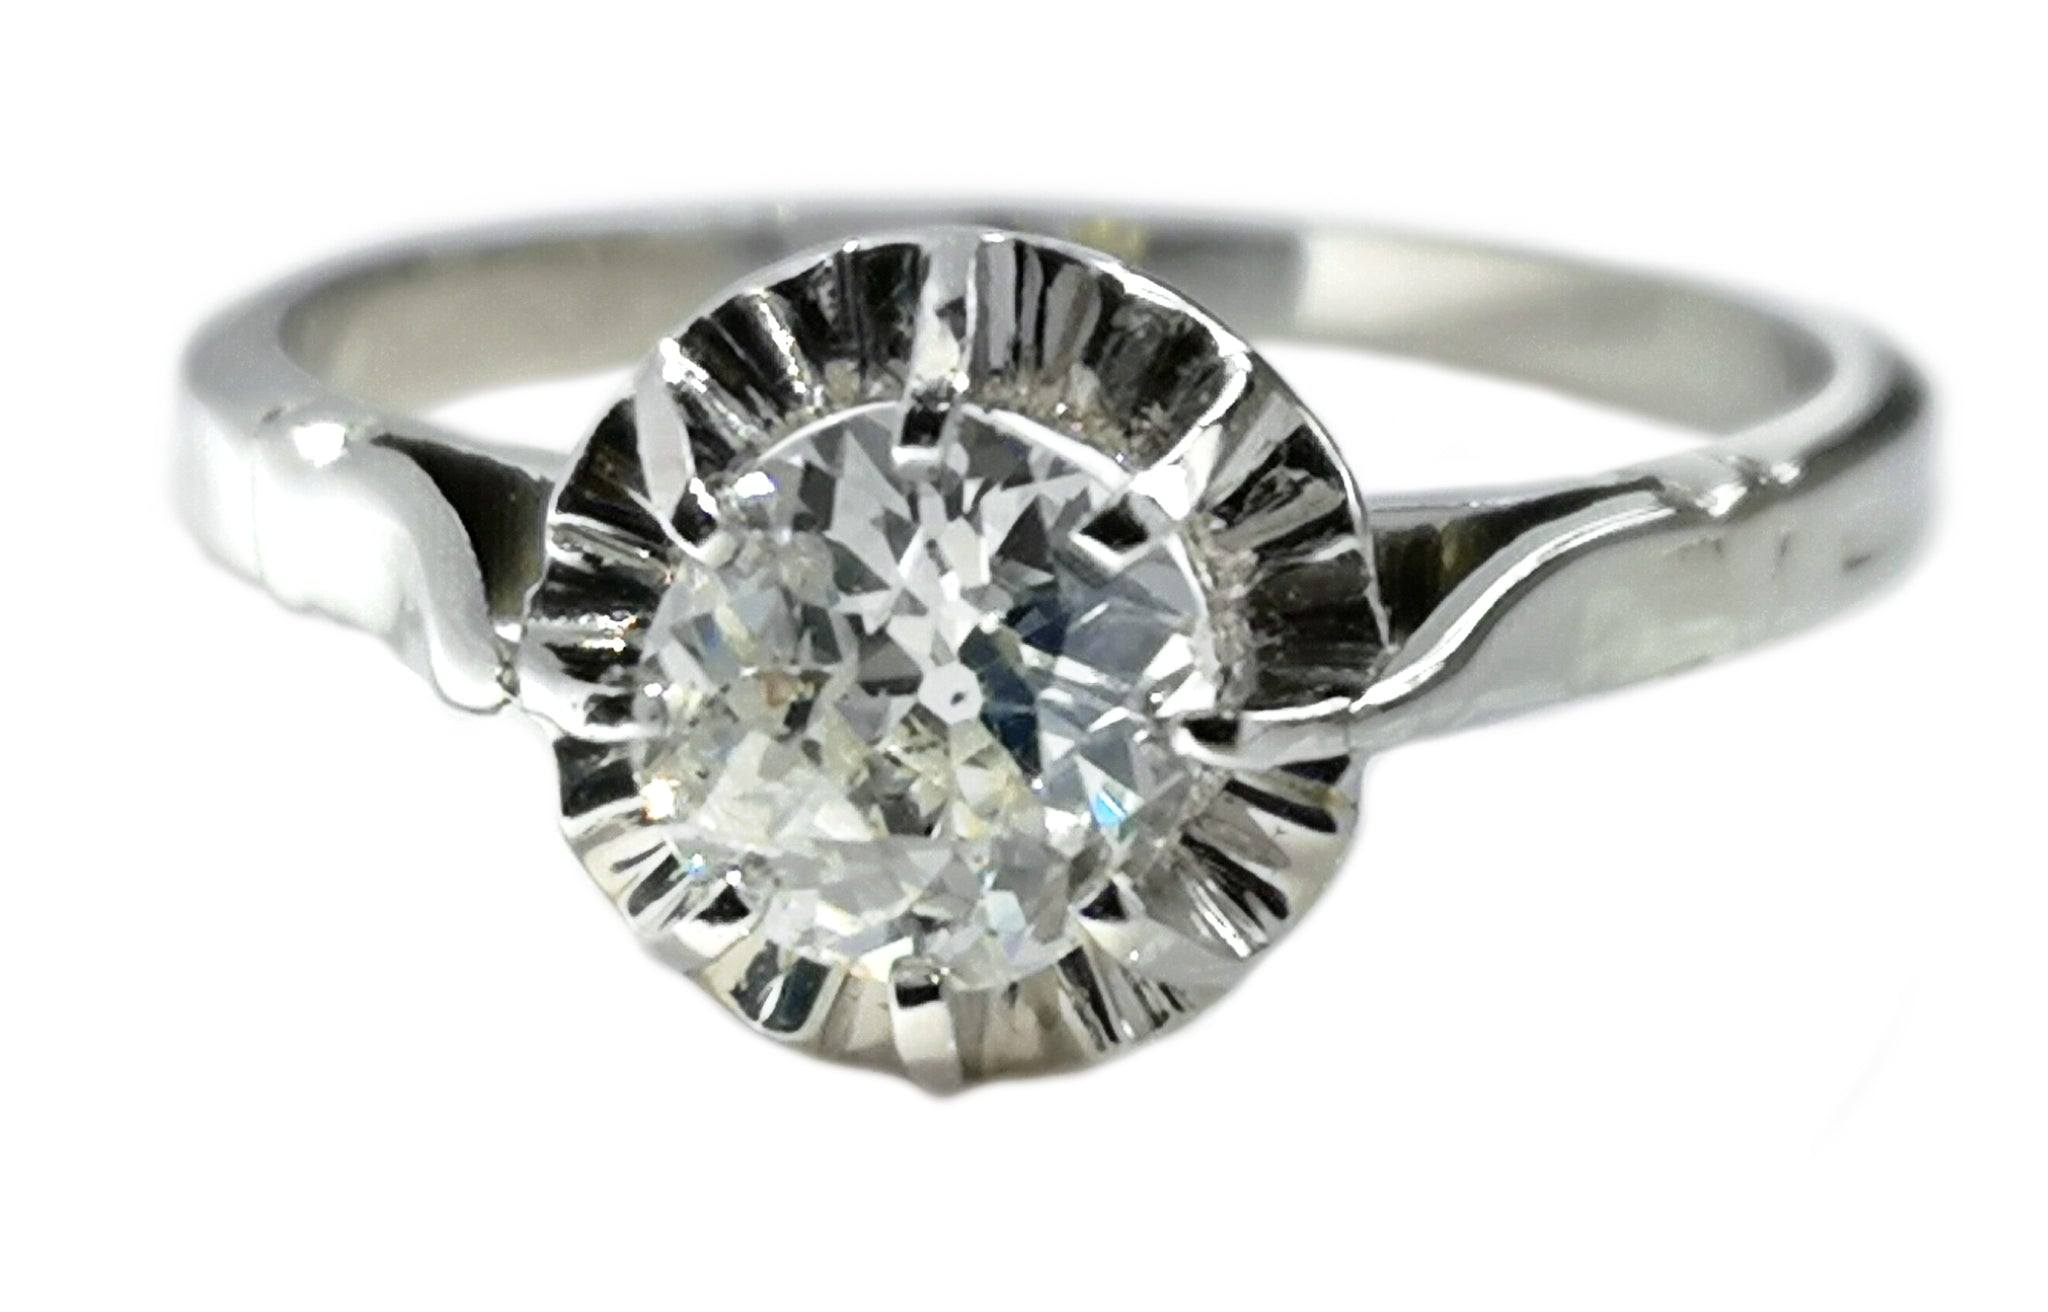 Antique French Ballerine .69ct G/SI1 Old Mine Cut Diamond Engagement Ring SZ L